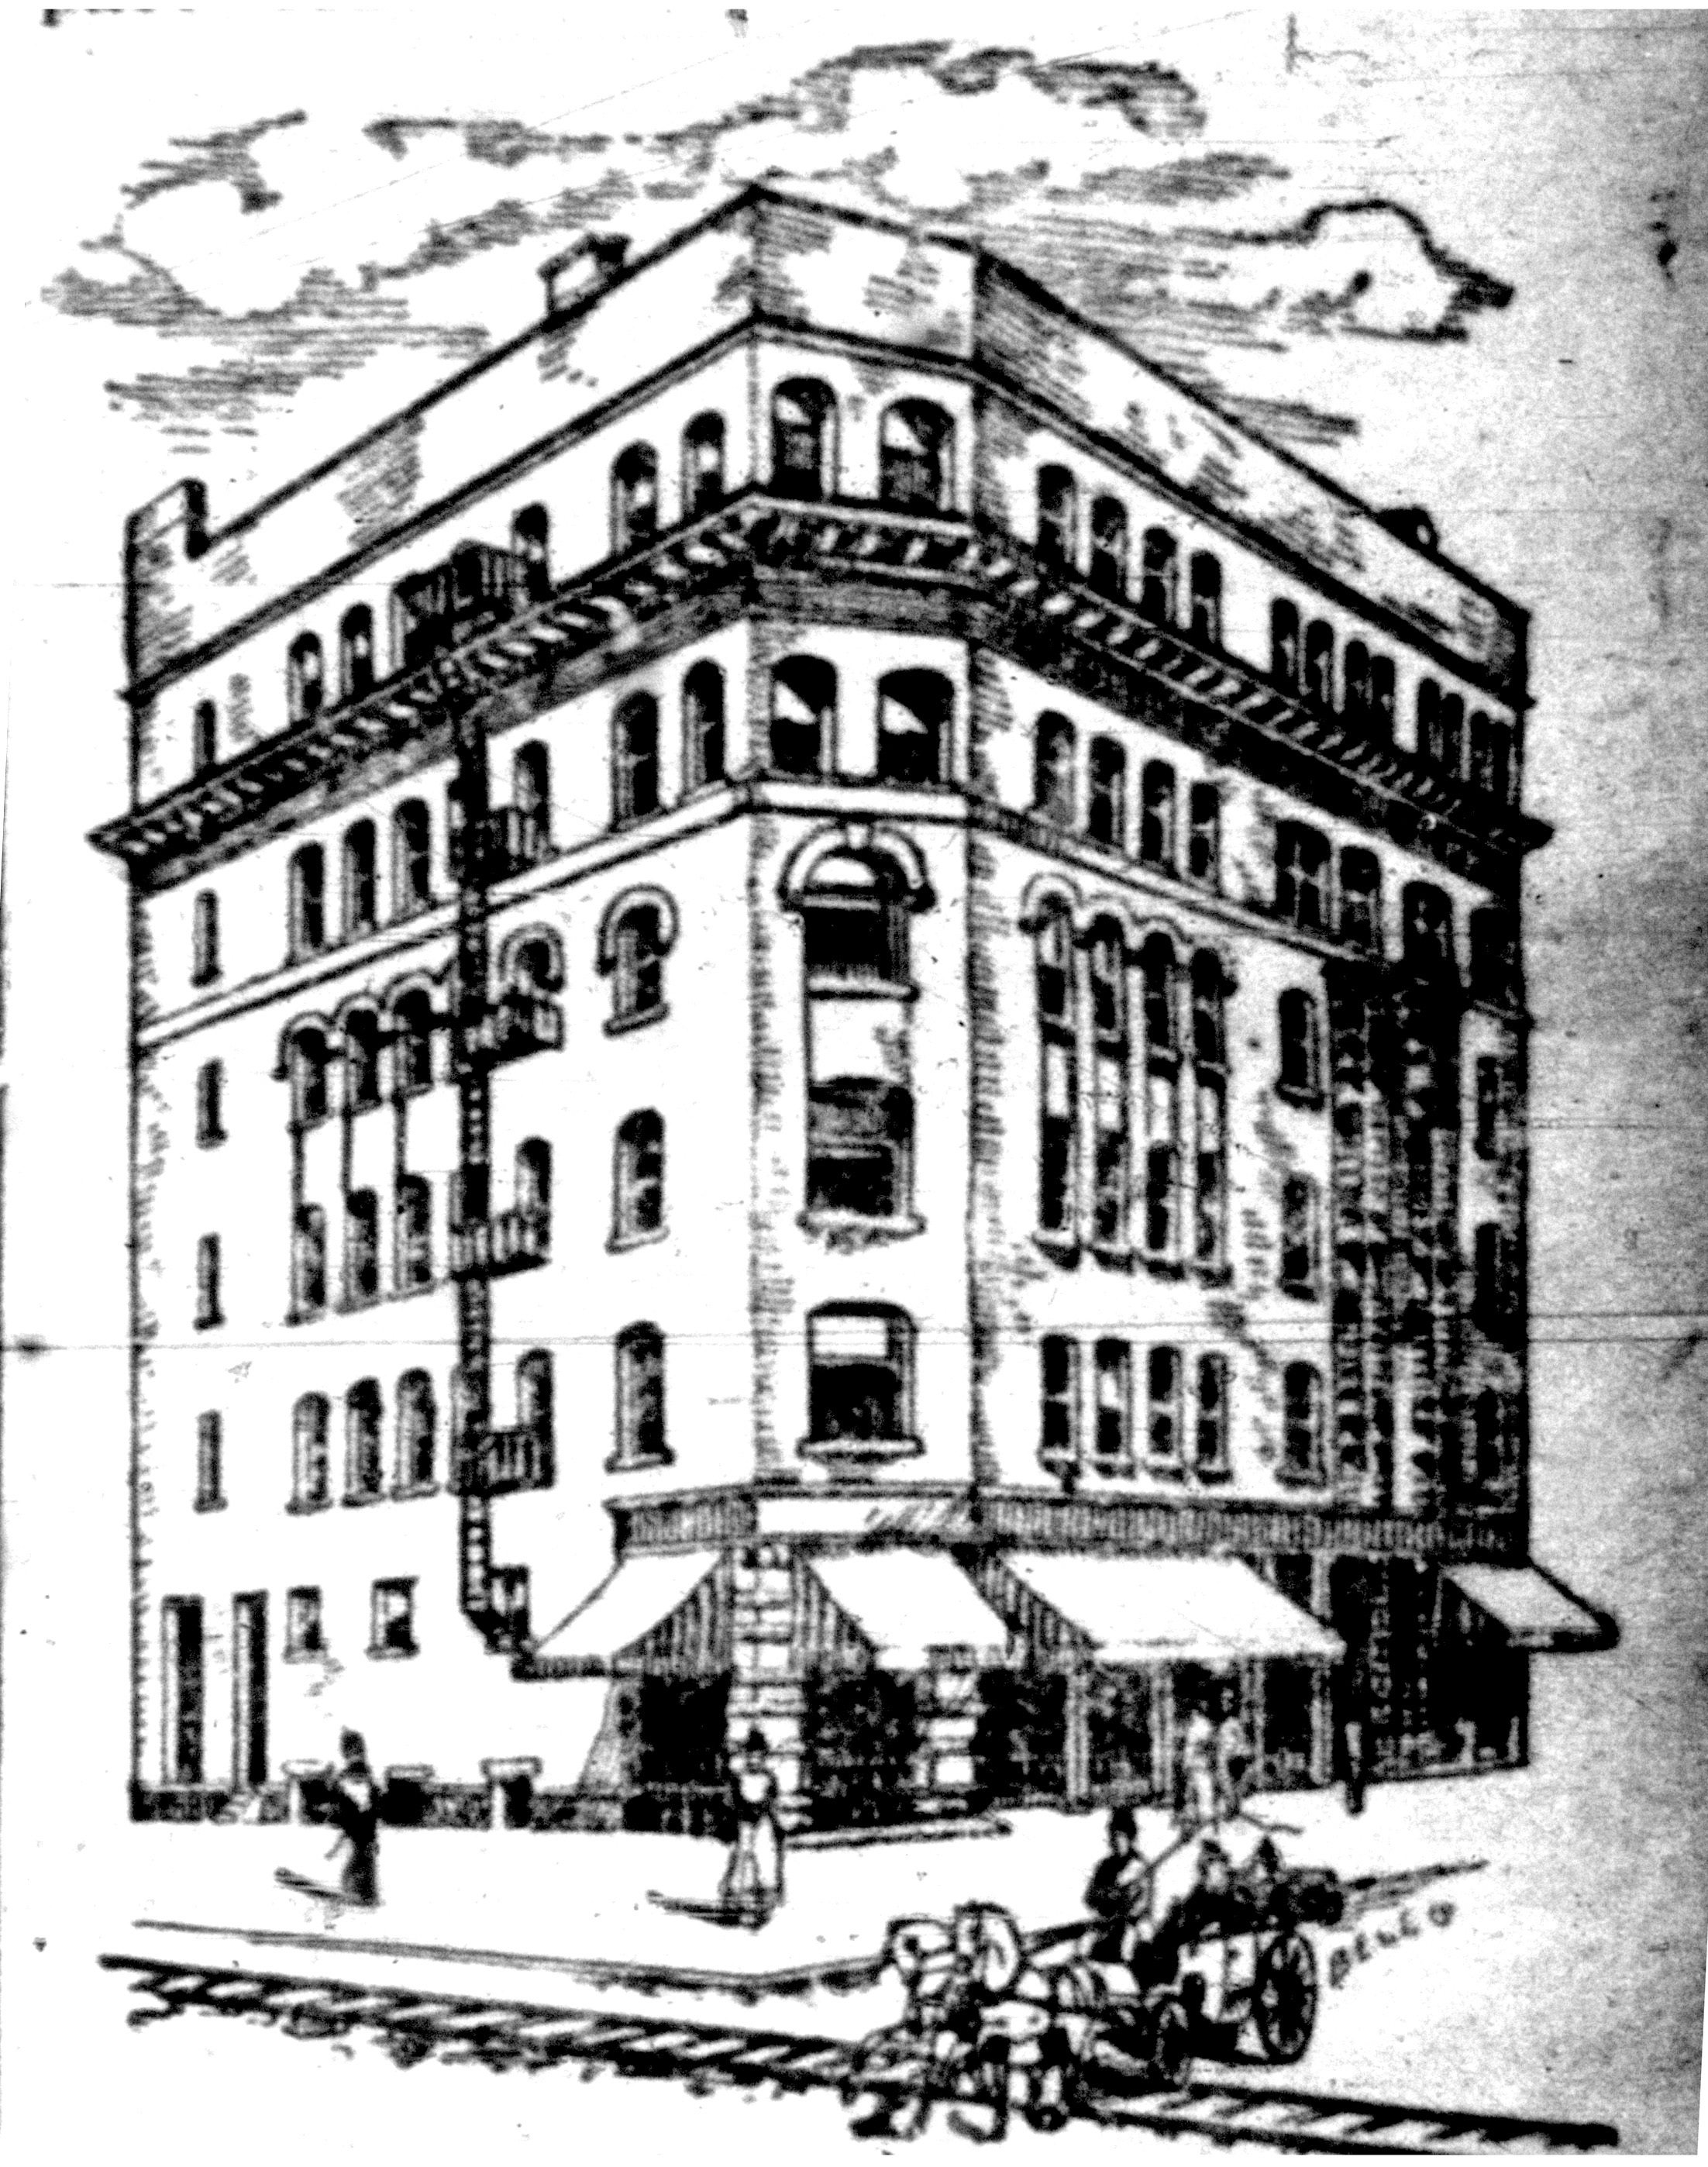 Smith Building, northeast corner of Webster and Tremont, illustration (1893-08-05 Tonawanda News).jpg